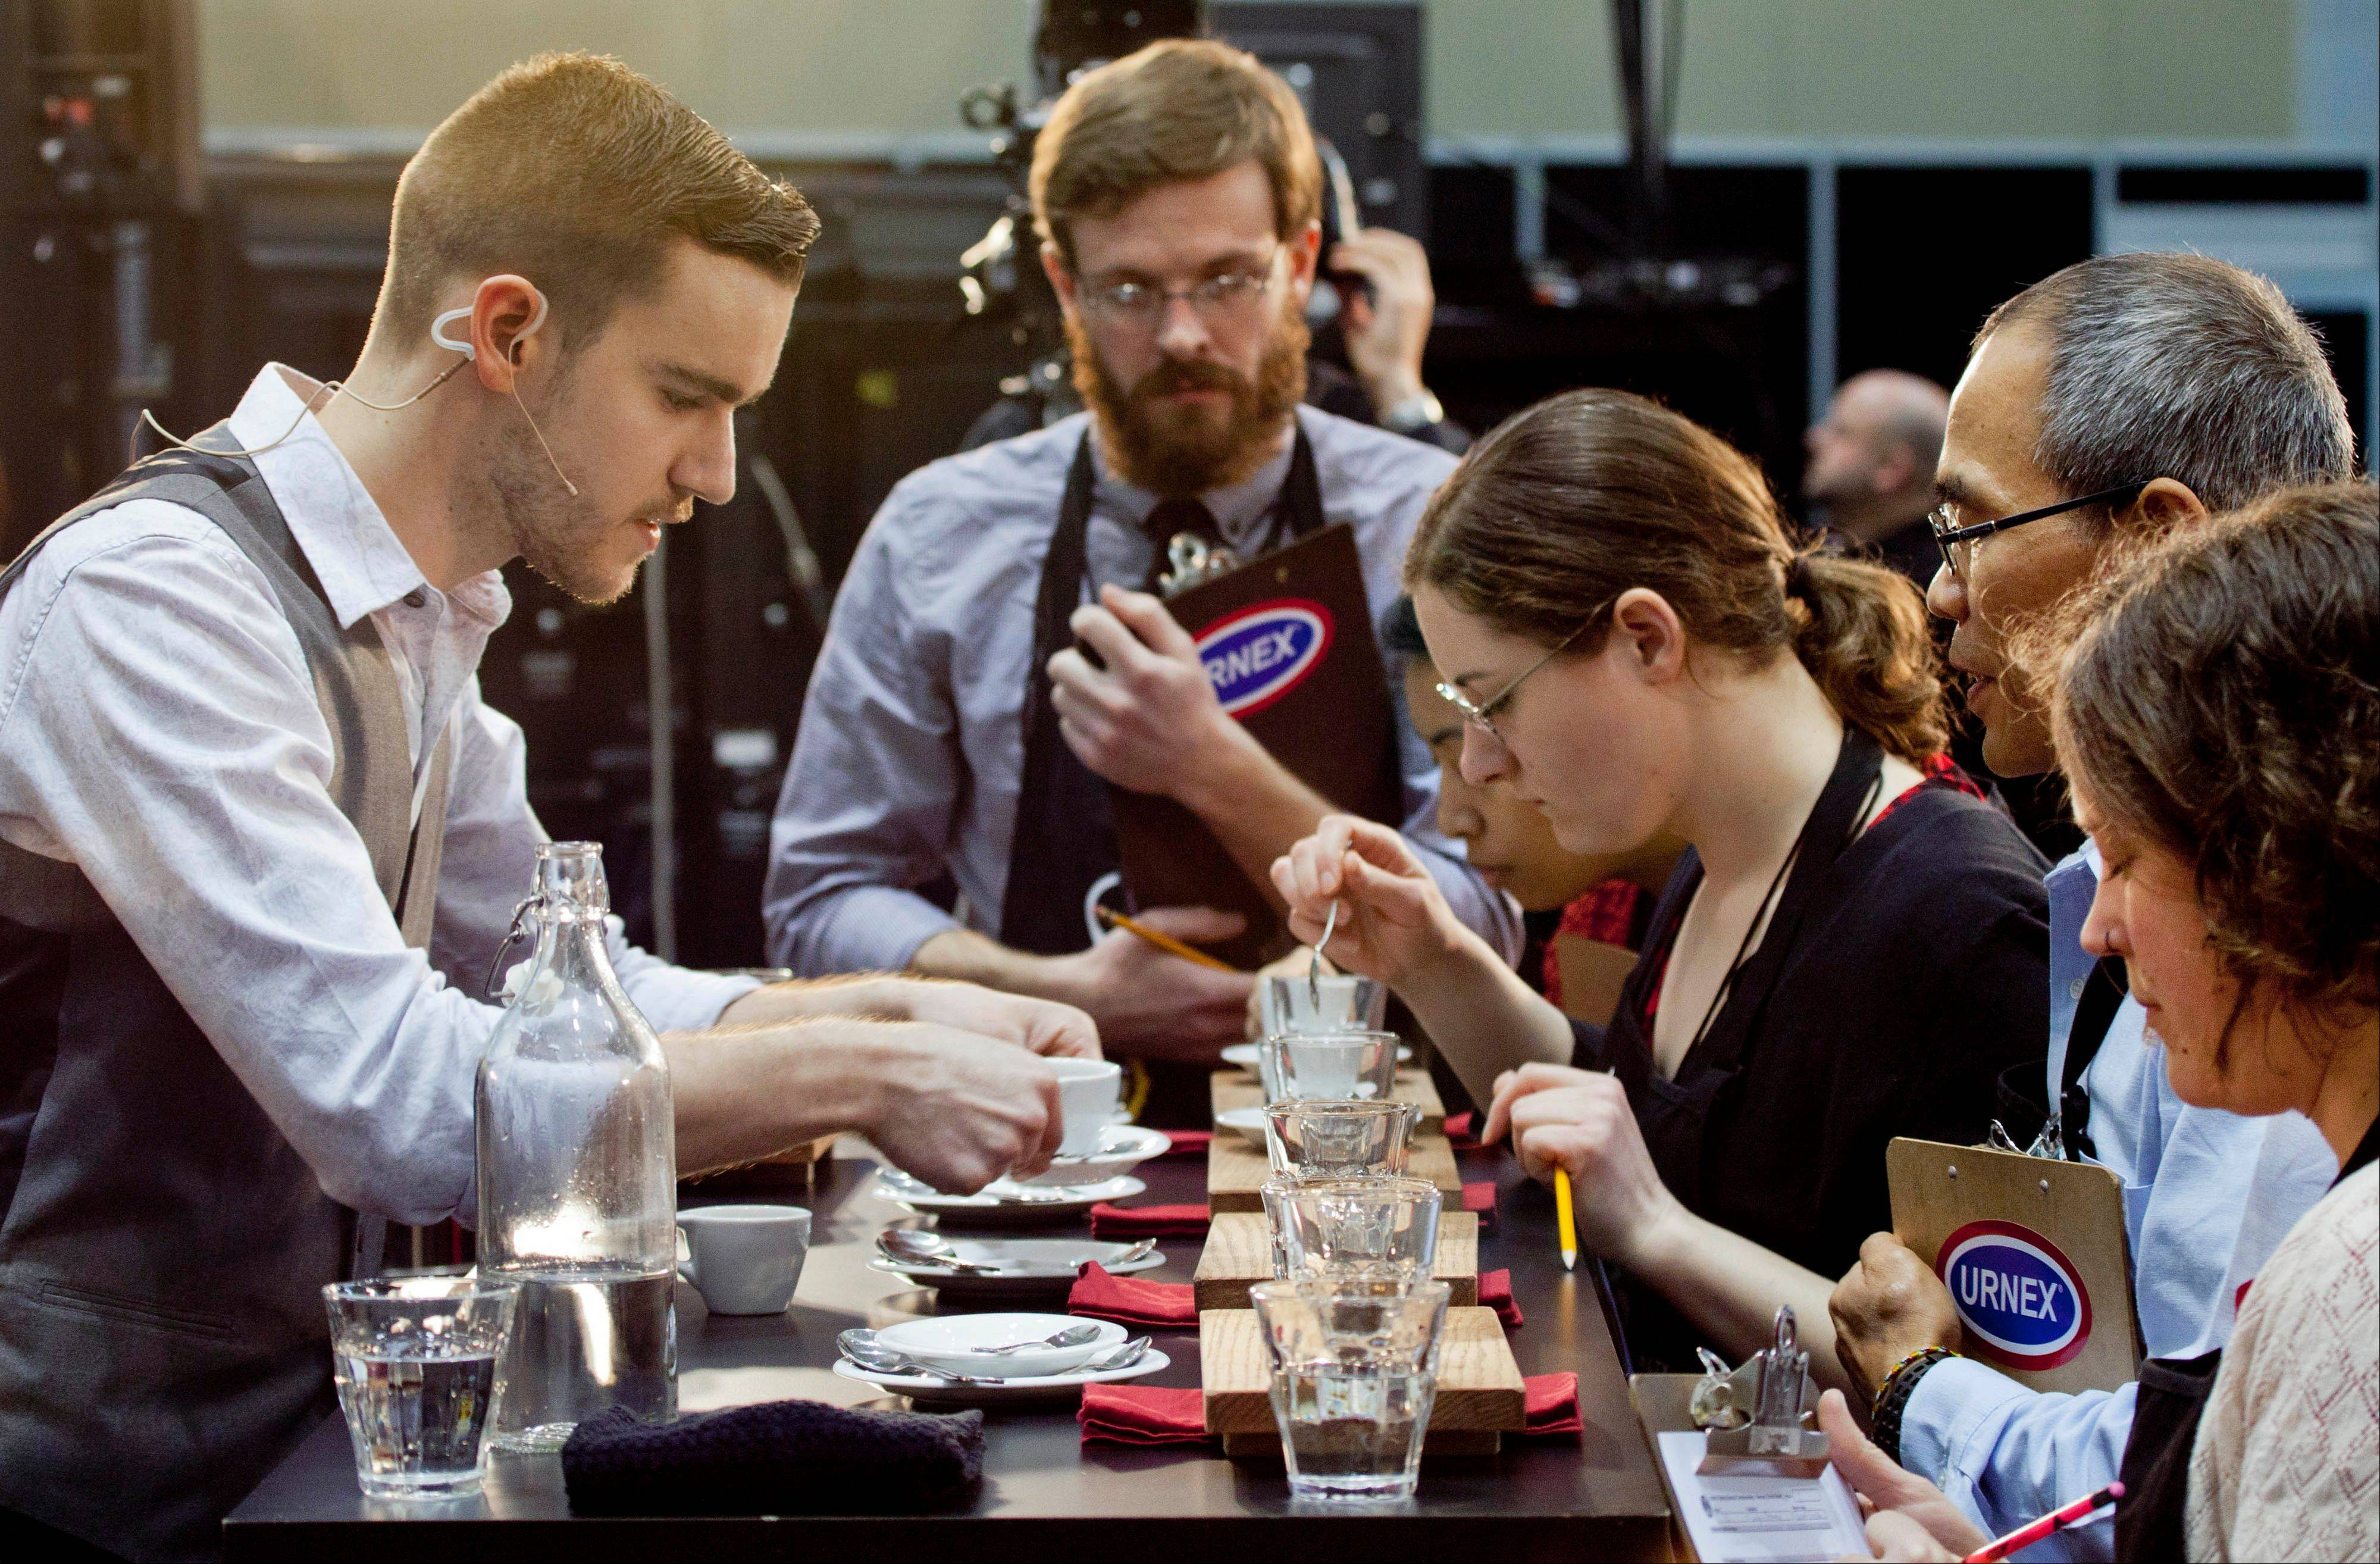 Barista competitor Nick Purvis, left, of Santa Barbara, Calif., presents one of his brewed entries to a panel of judges at the annual United States Barista Championship in Boston. Participants have 15 minutes to prepare and serve four espressos, four cappuccinos and four signature beverages, as they compete for a chance to go to the world championship in Melbourne, Australia.